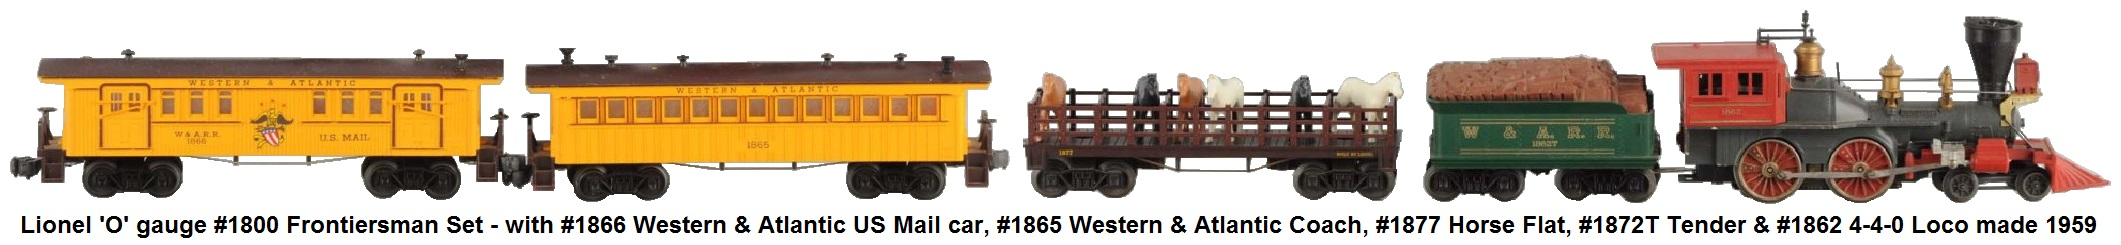 Lionel 'O' gauge #1872 General steam loco and tender from 1959